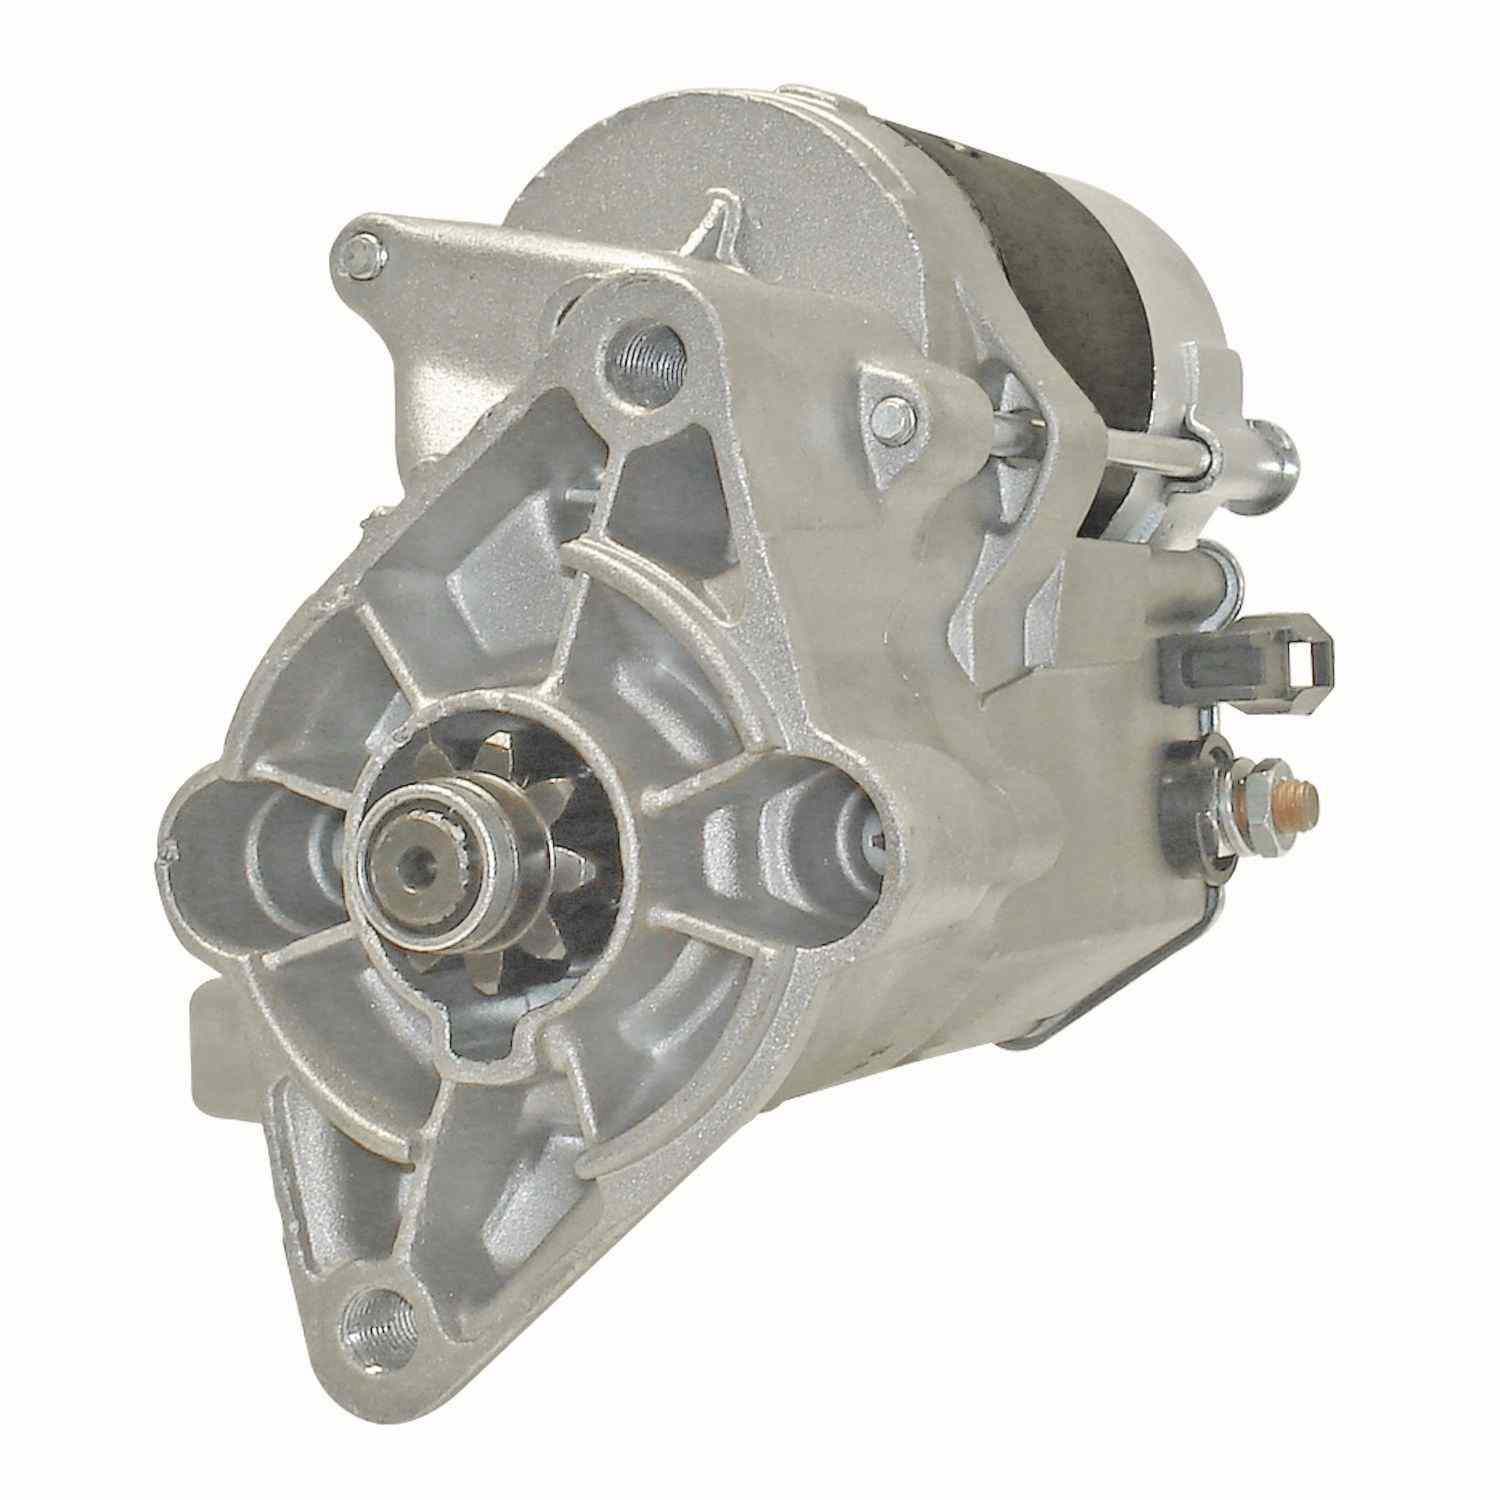 ACDELCO GOLD/PROFESSIONAL - Reman Starter Motor - DCC 336-1423